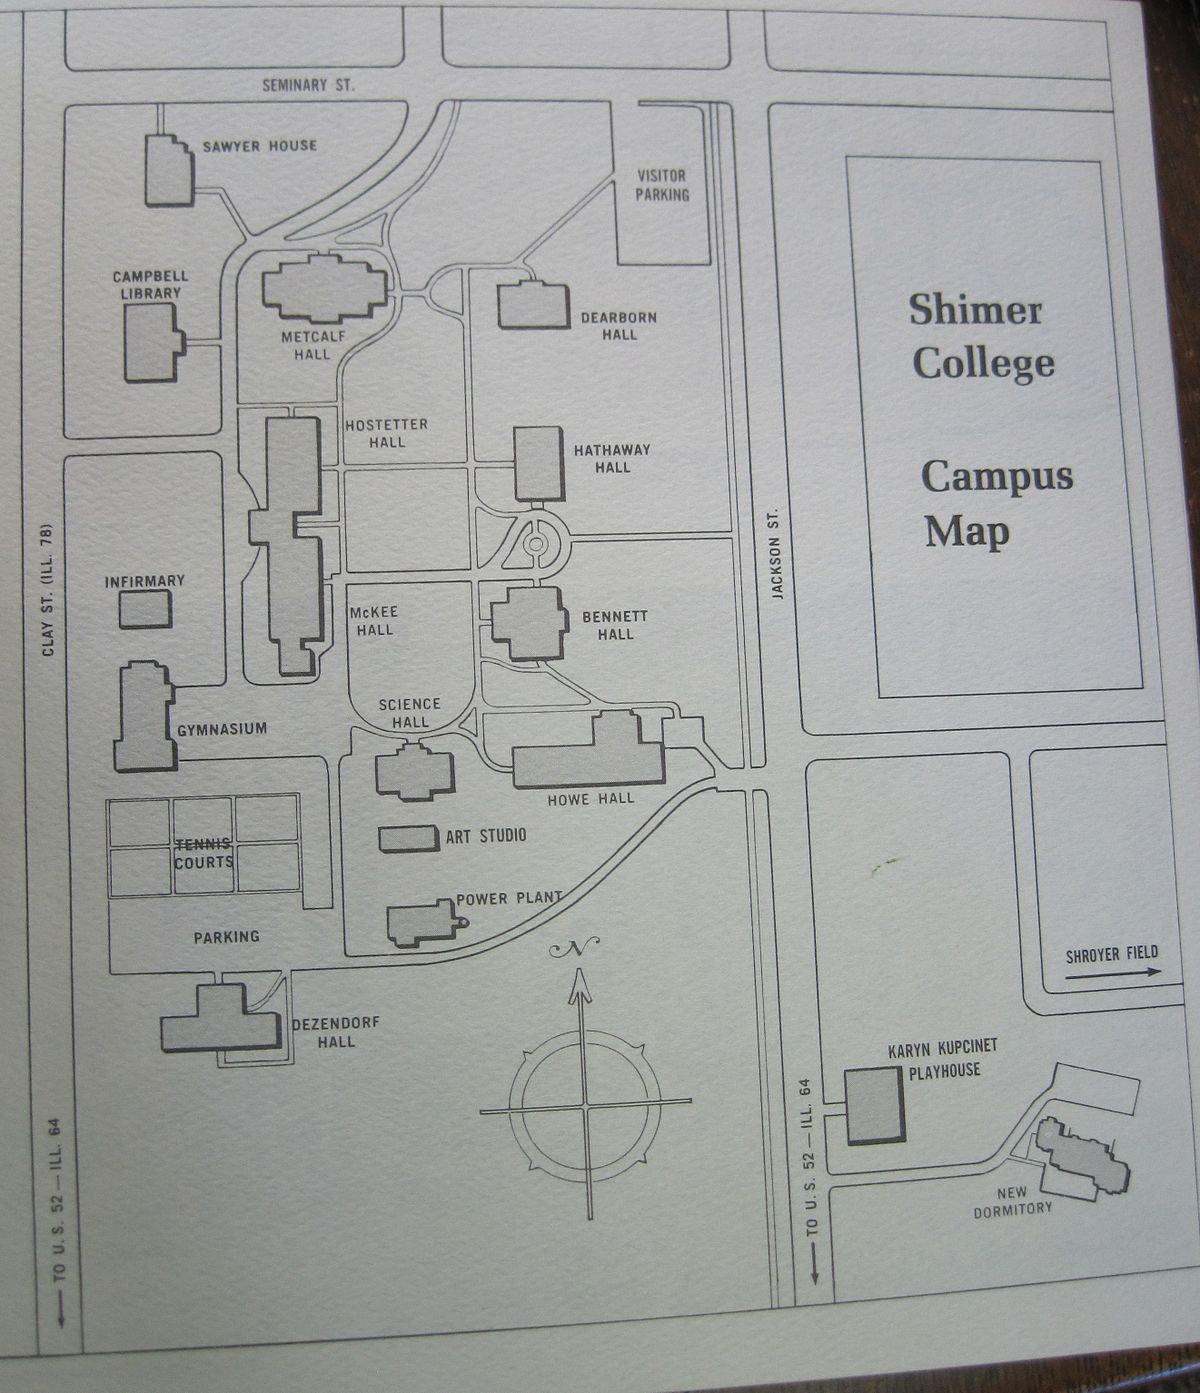 bennett college campus map File Shimer College Campus Map 1973 Jpg Wikimedia Commons bennett college campus map